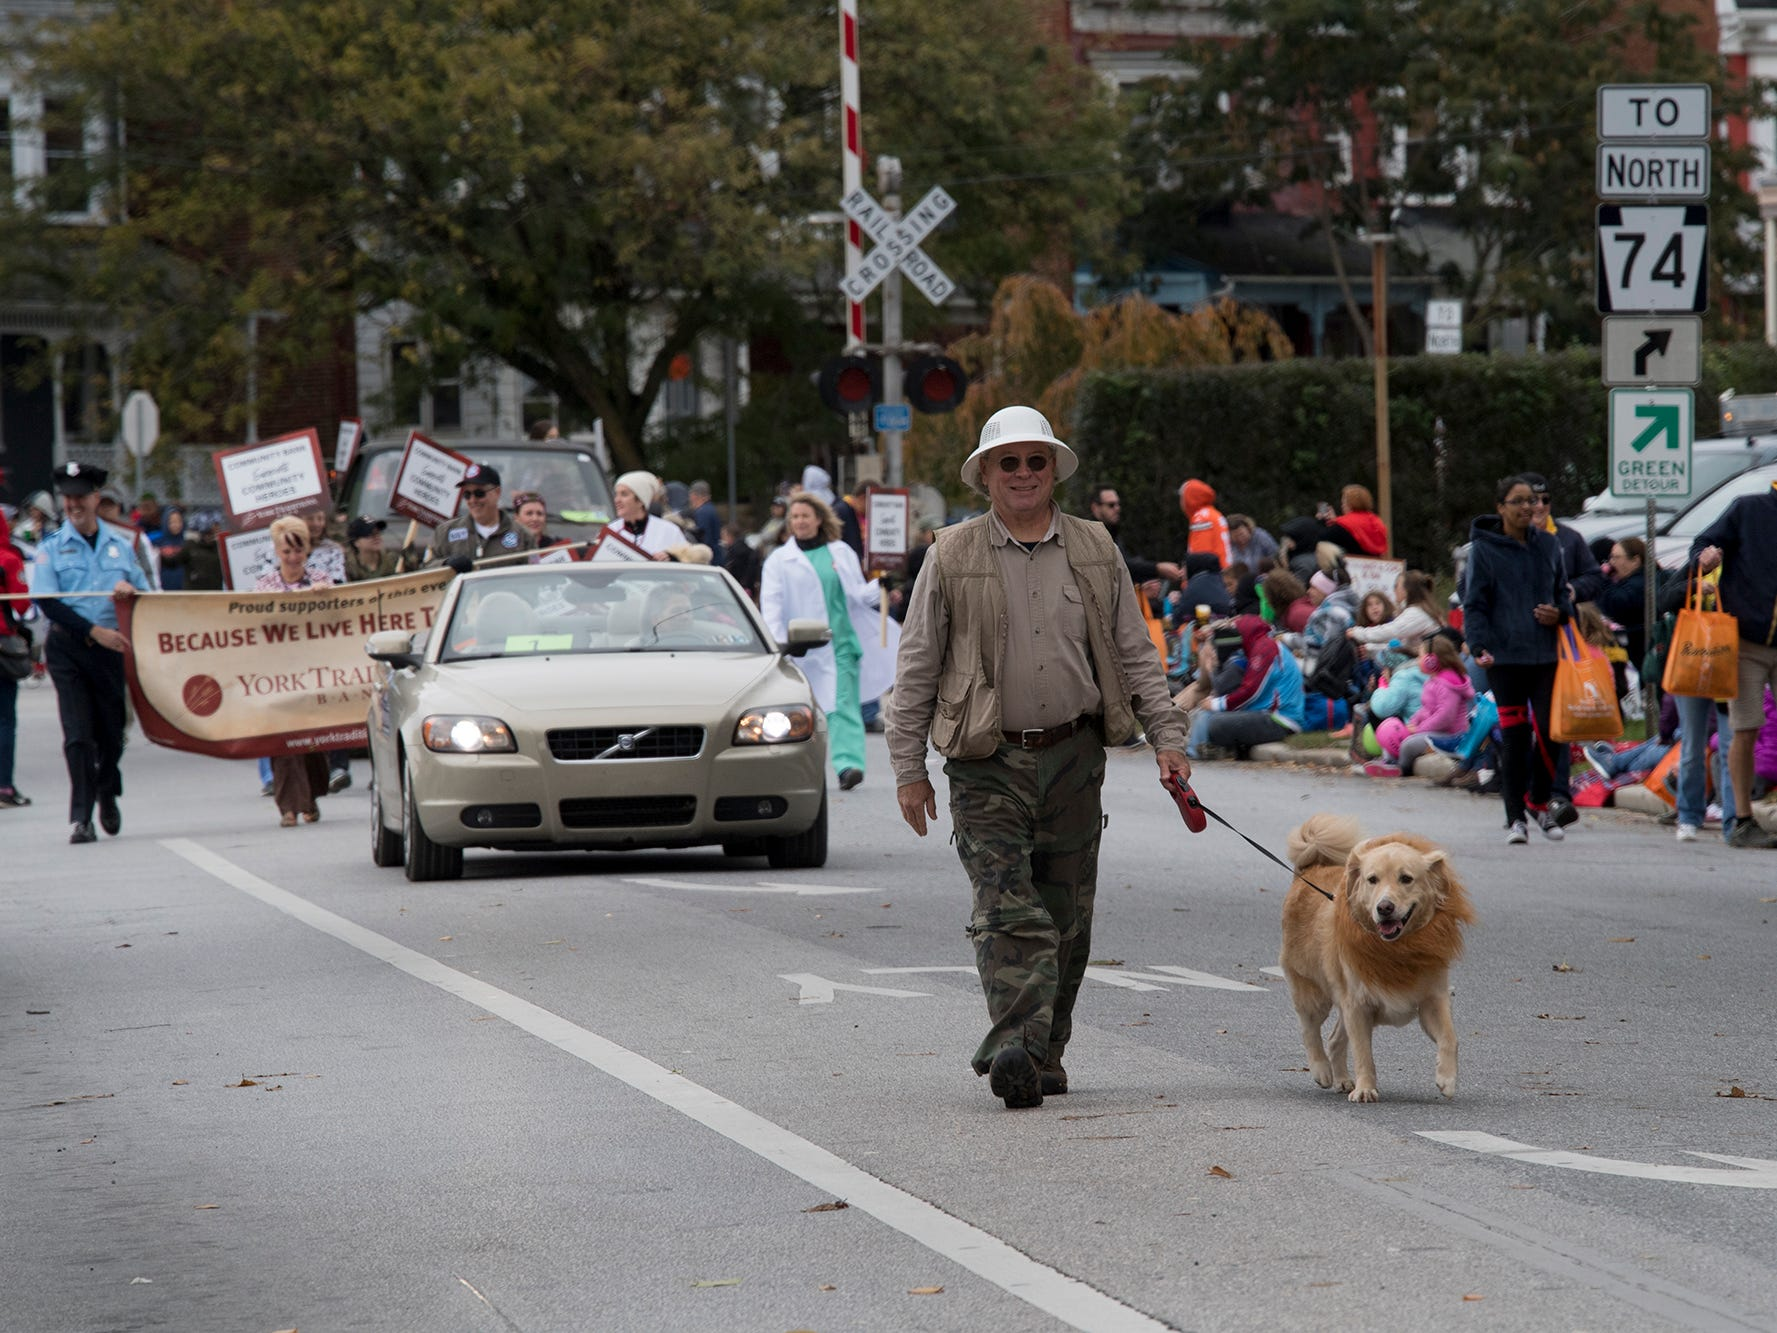 The 69th Annual York Halloween Parade presented by York Traditions Bank Sunday in York begins.